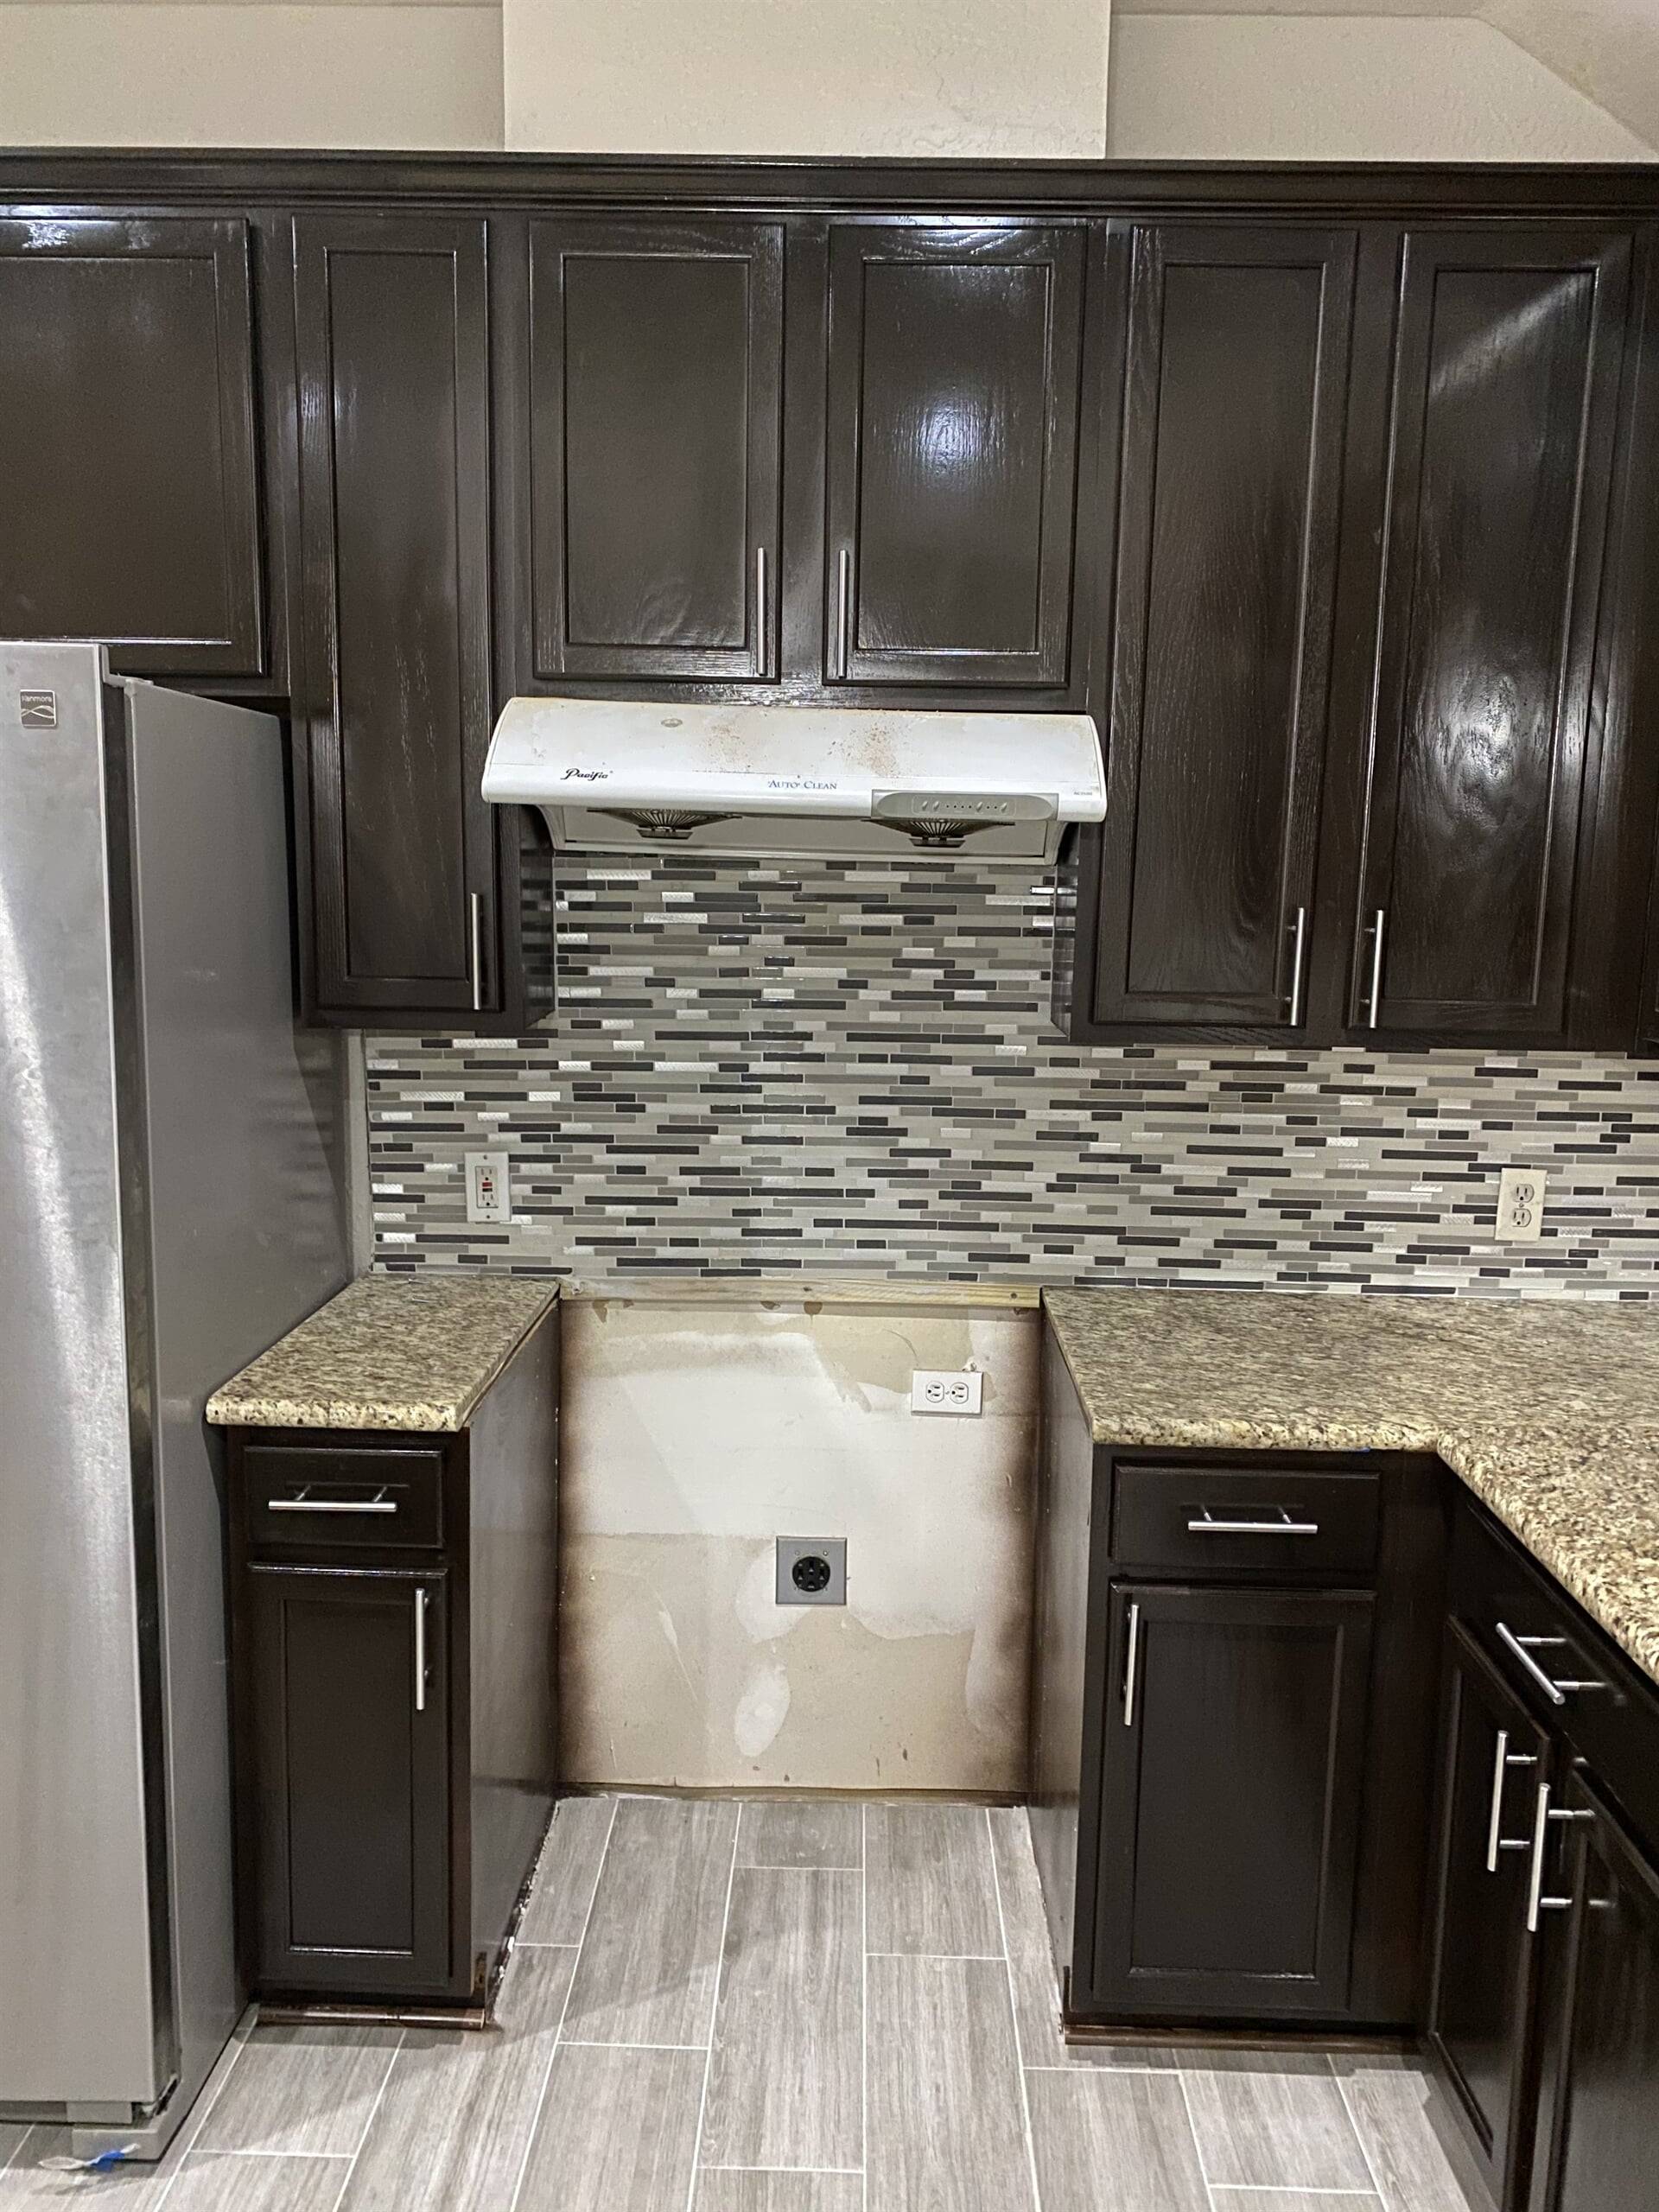 Kitchen cabinets from Houston Floor Installation Services in Spring, TX